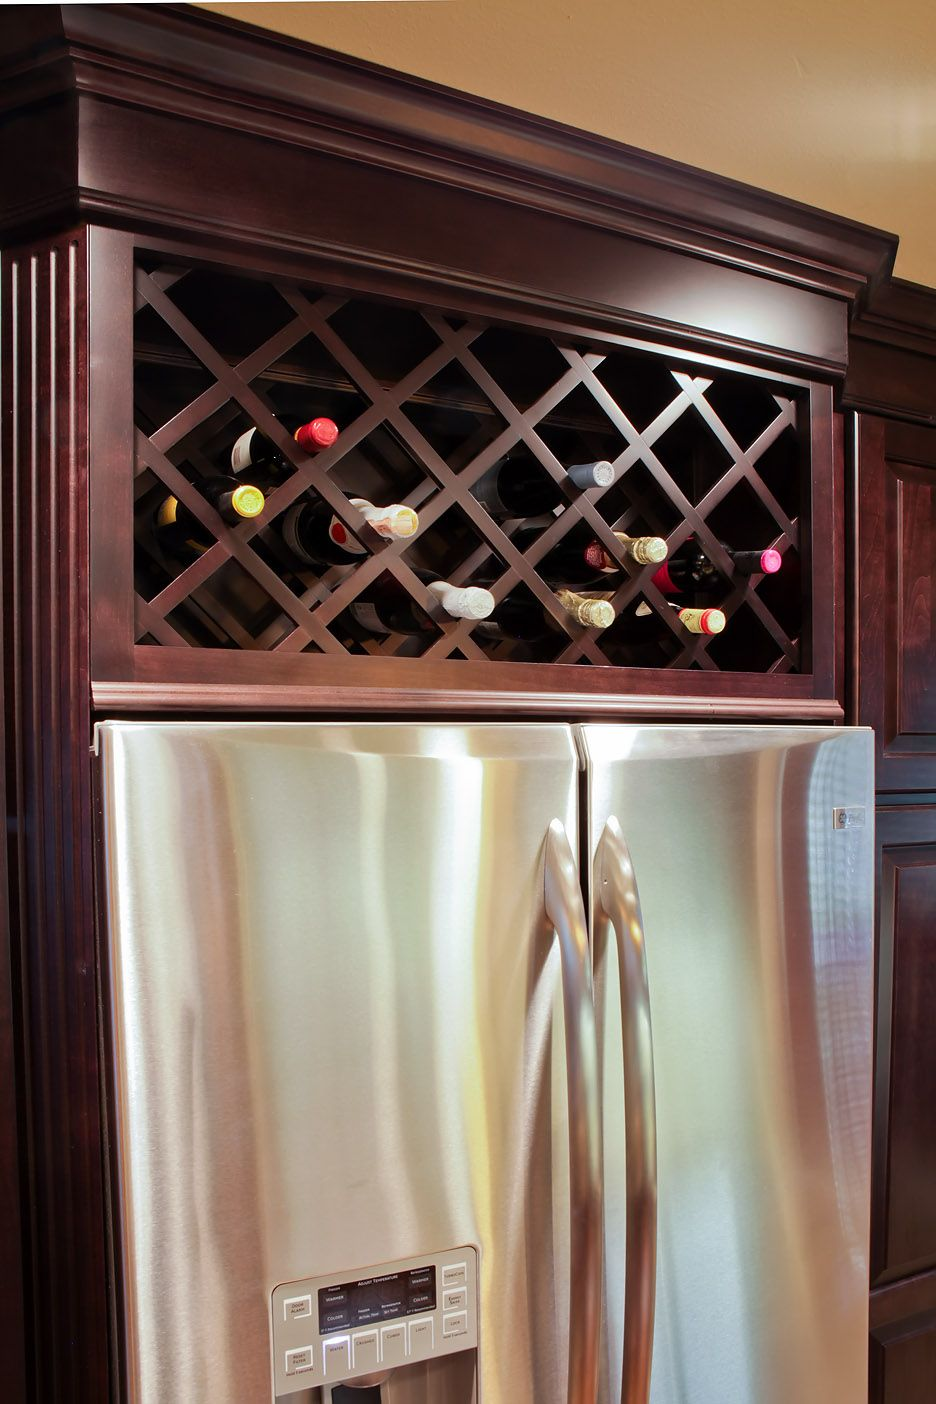 Over The Fridge Cabinet Space Above Fridge Idea I Like This Or Making It Into A Wine Rack